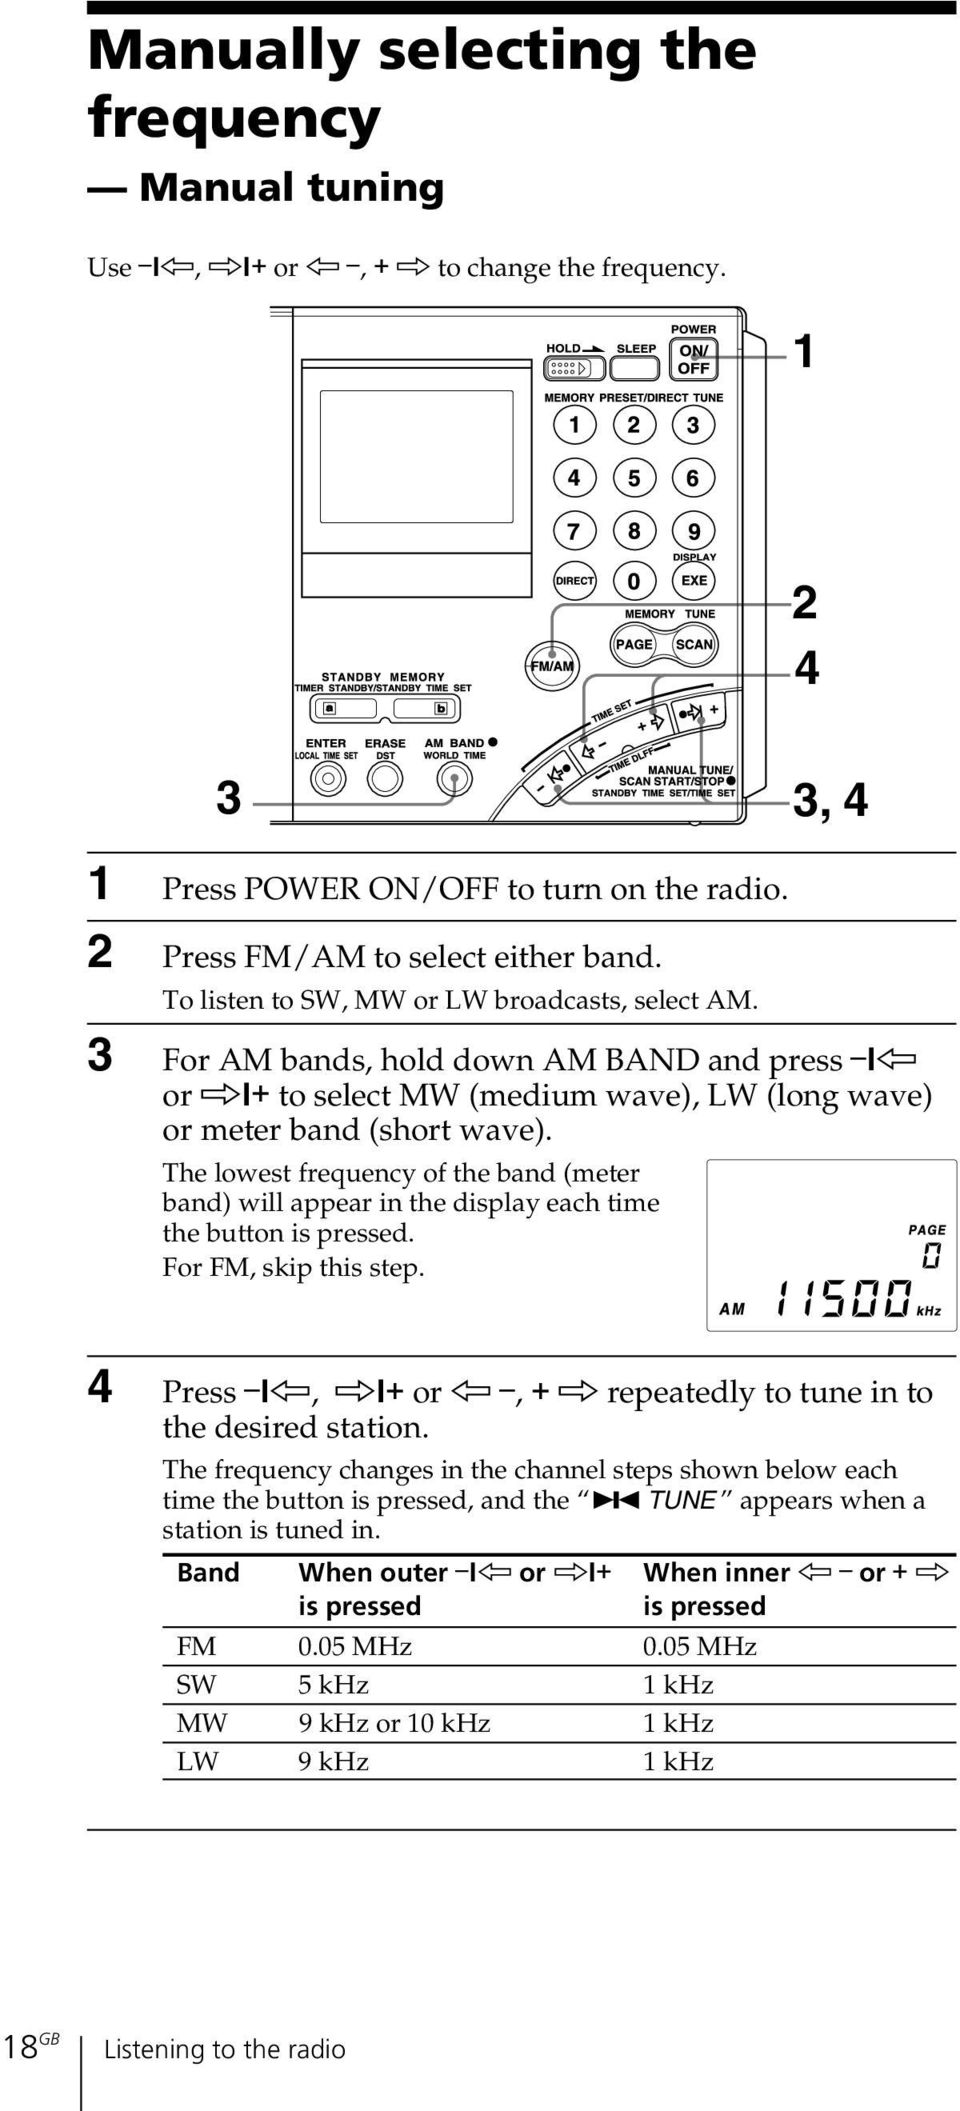 The lowest frequency of the band (meter band) will appear in the display each time the button is pressed. For FM, skip this step. 4 Press?K, k?+ or K, + k repeatedly to tune in to the desired station.